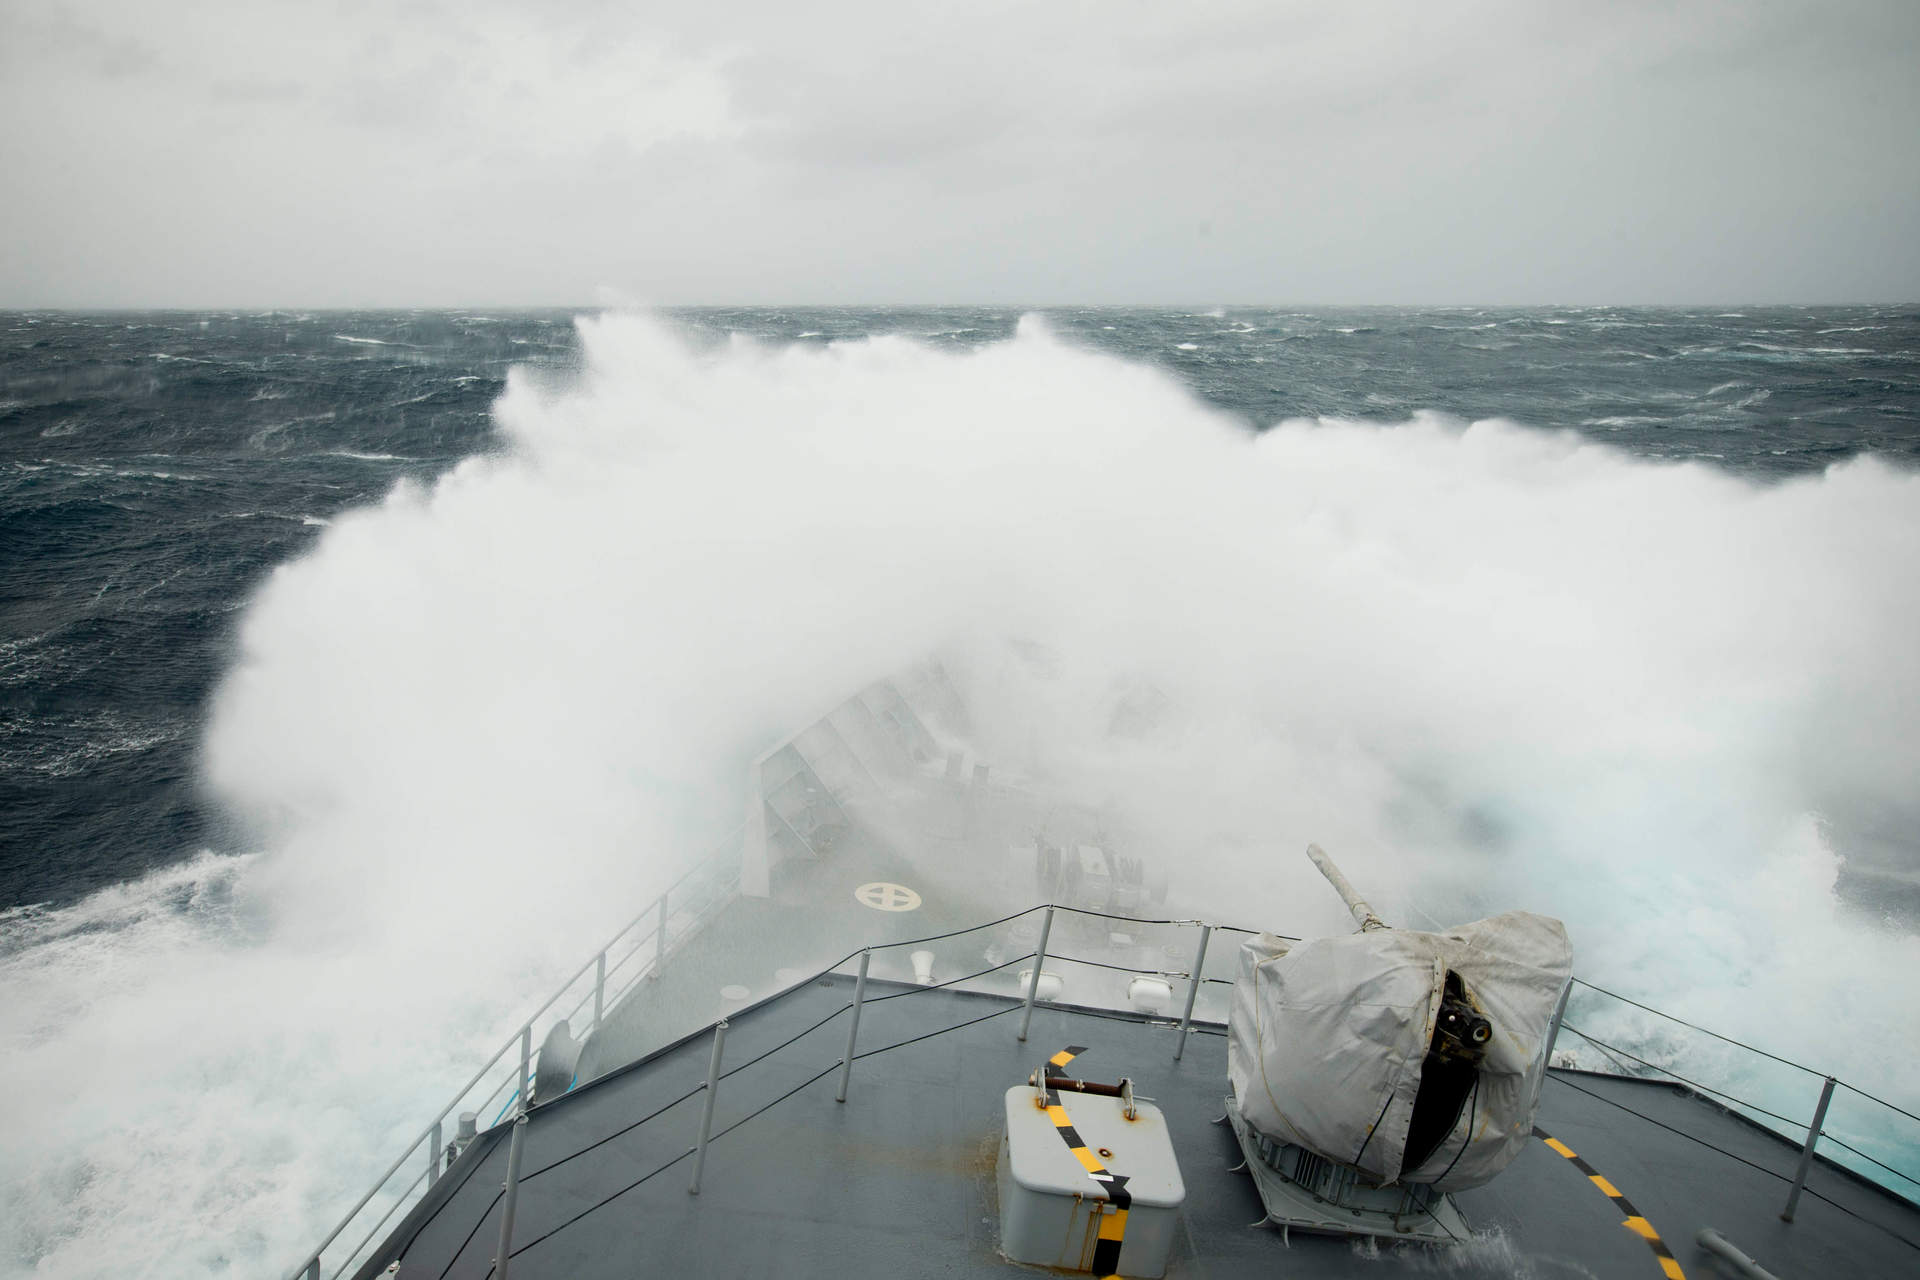 Editorial: Giant waves should shift our apathy over climate